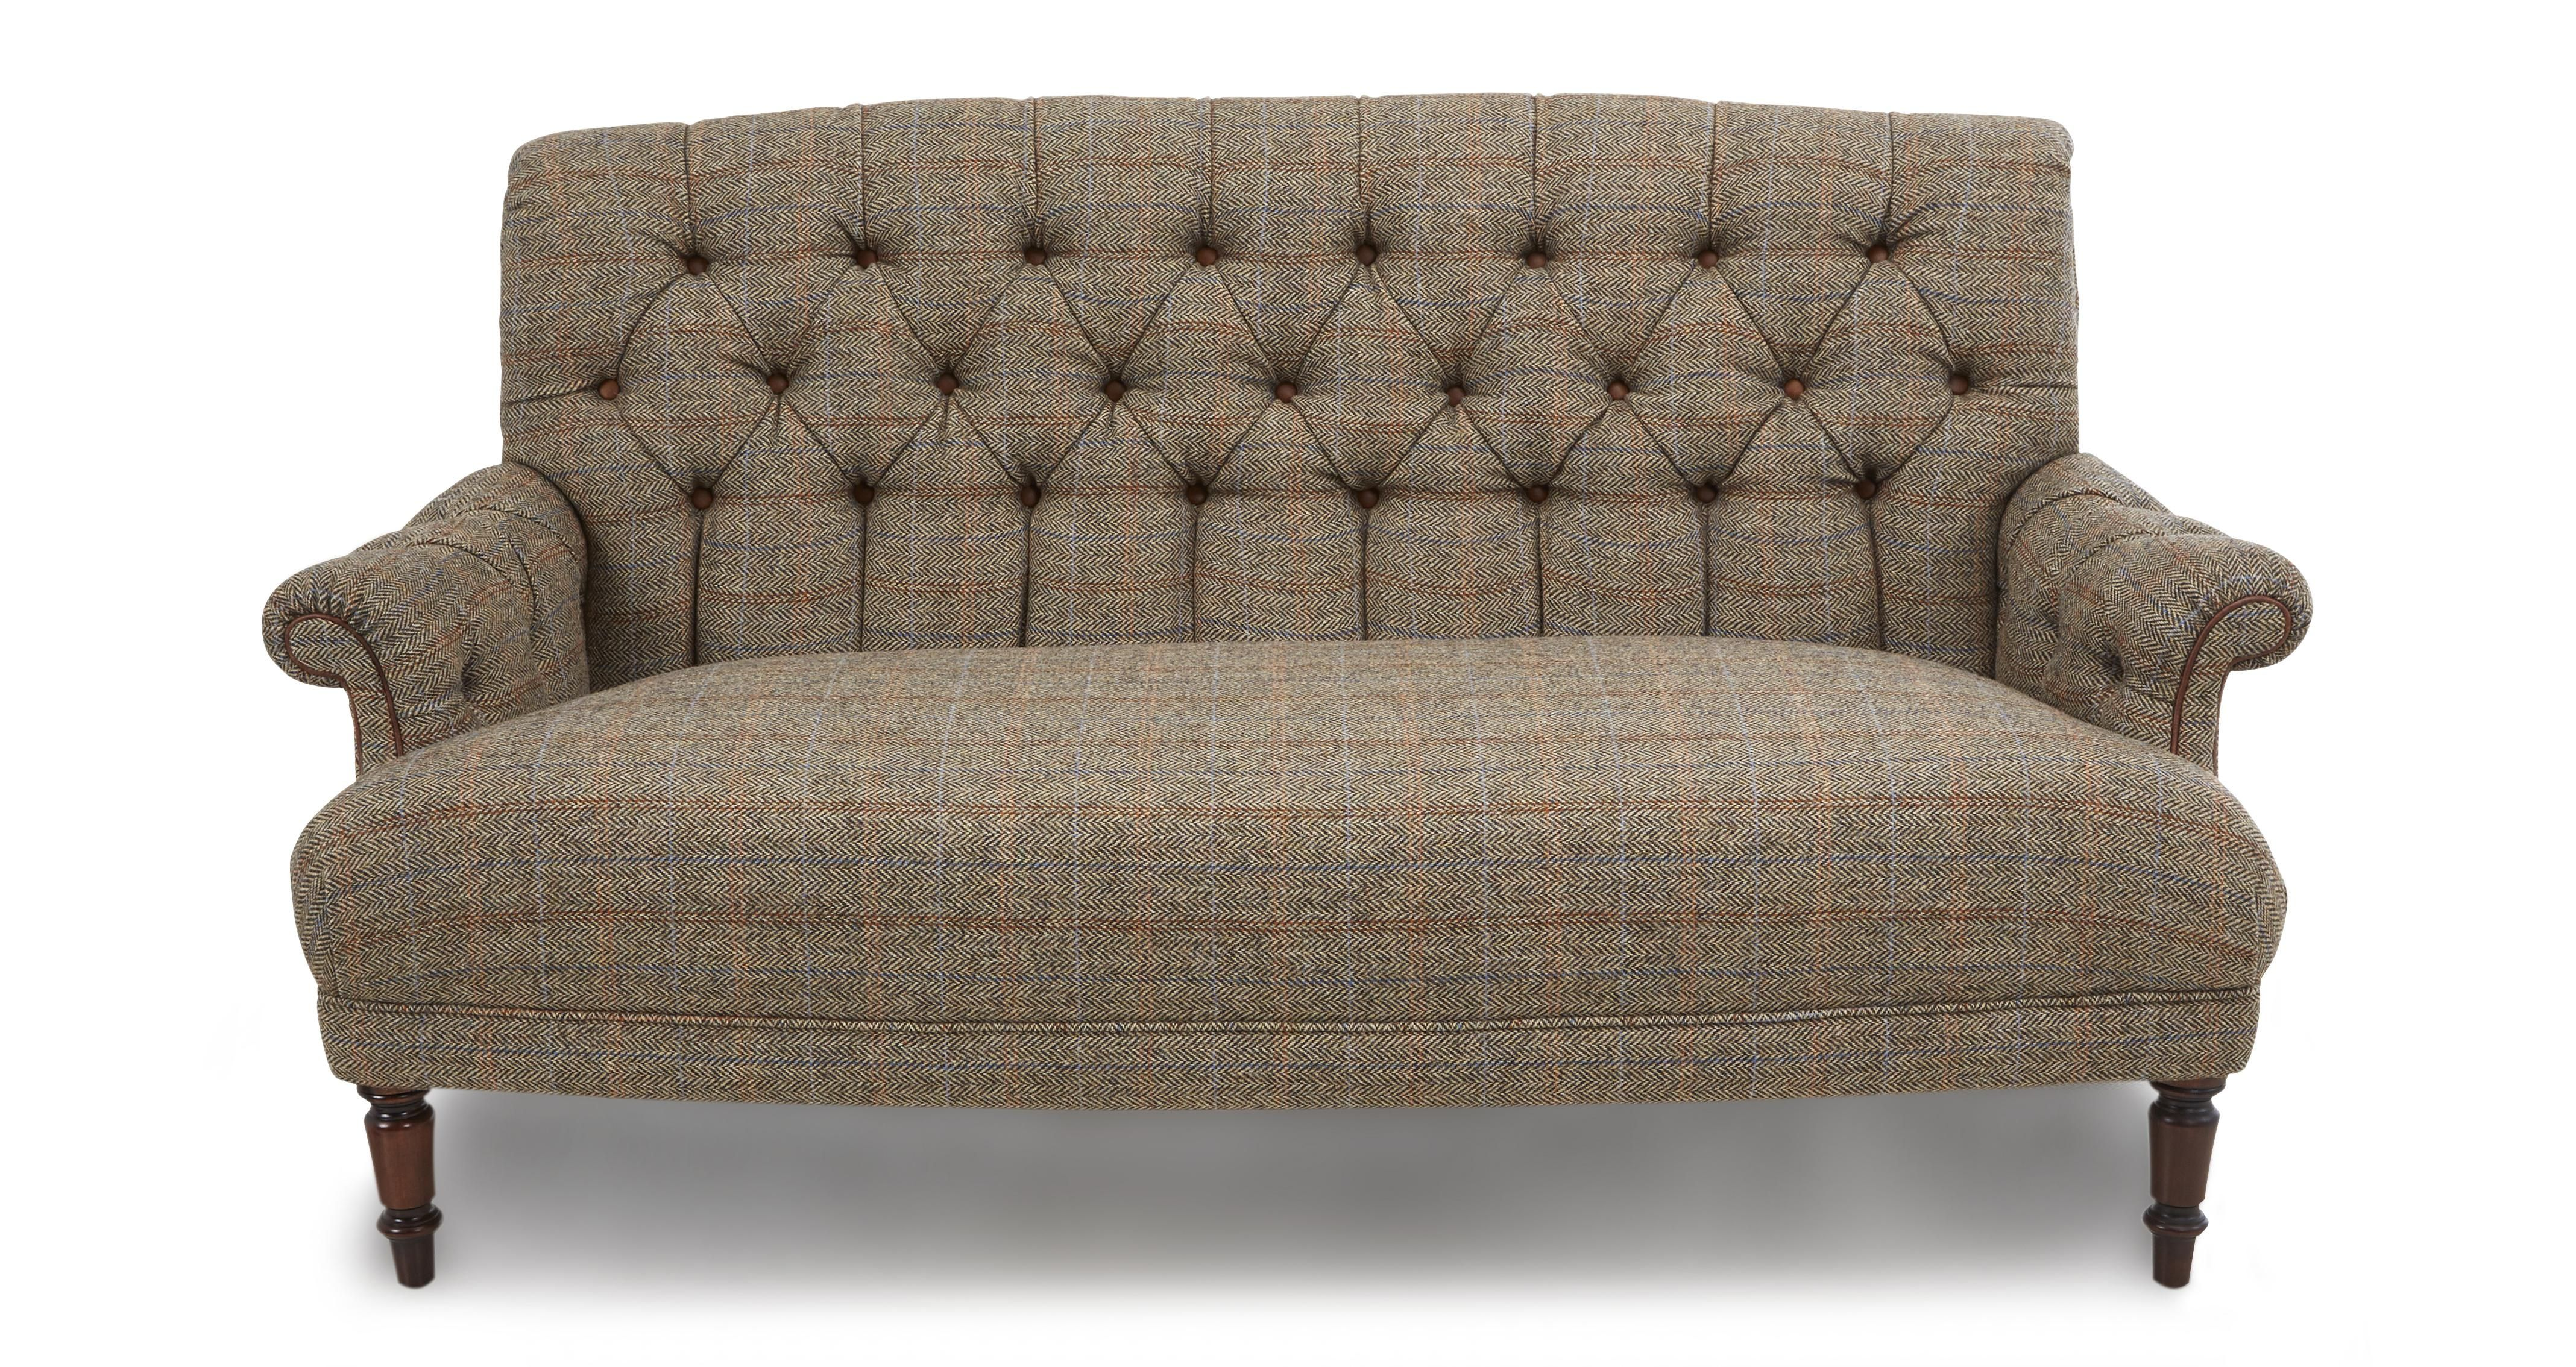 Tweed Sofa Best Collections Of Sofas And Couches Sofacouchs Com Fabric Sofa Accent Chairs For Sale Sofa Furniture